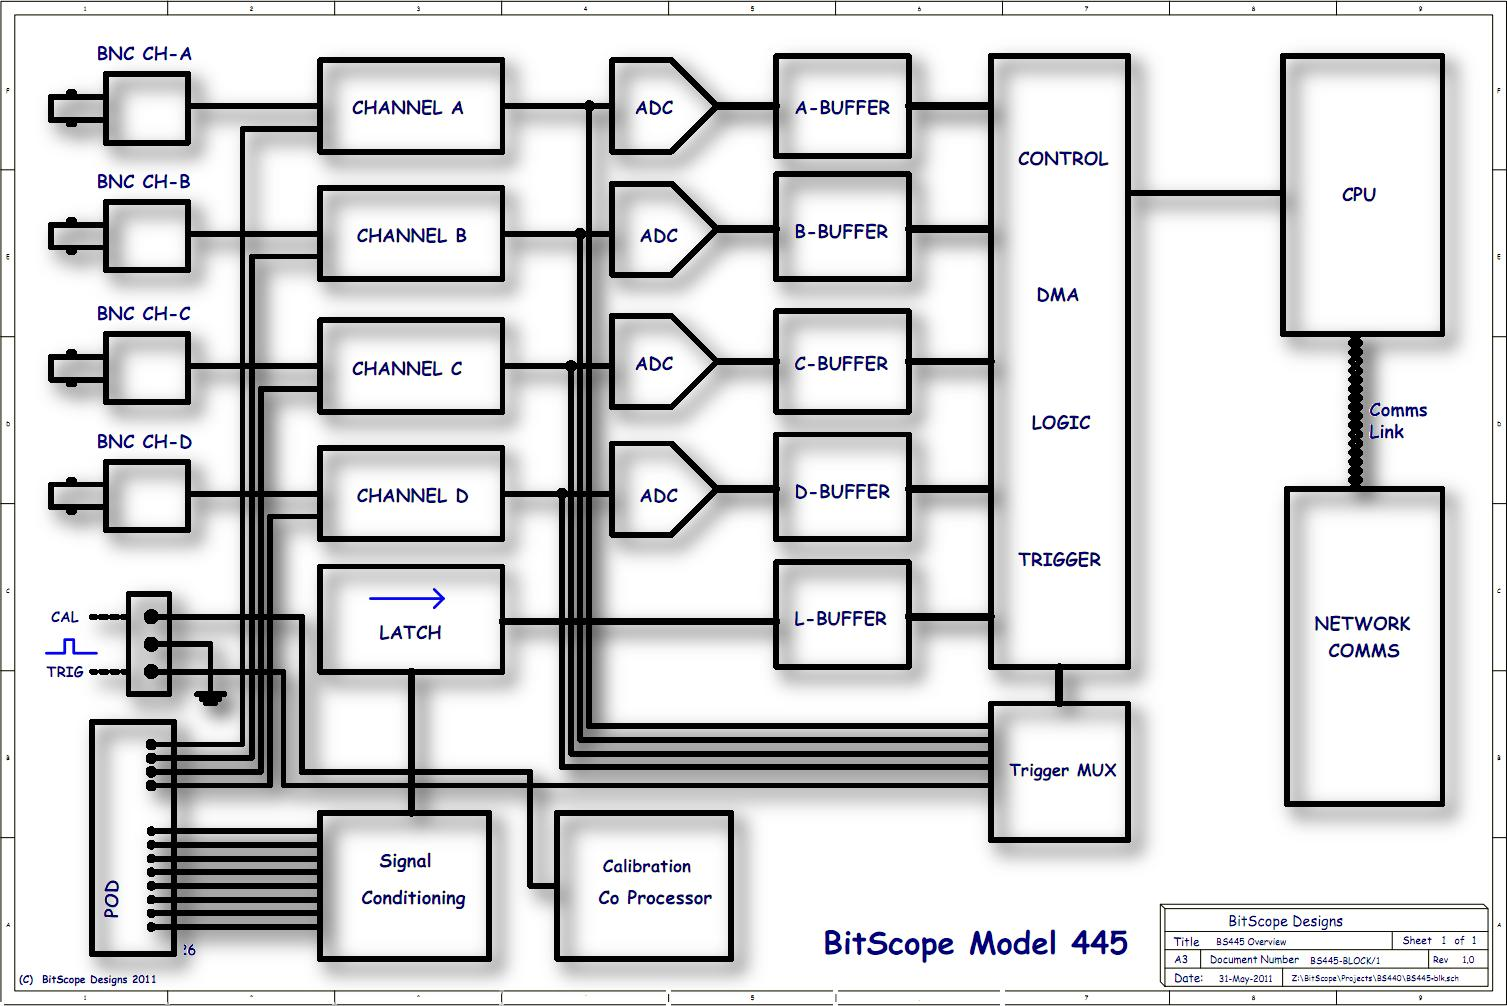 analog data acquisition system block diagram 08 f150 fuse box bitscope model 445 12 channel pc oscilloscope network